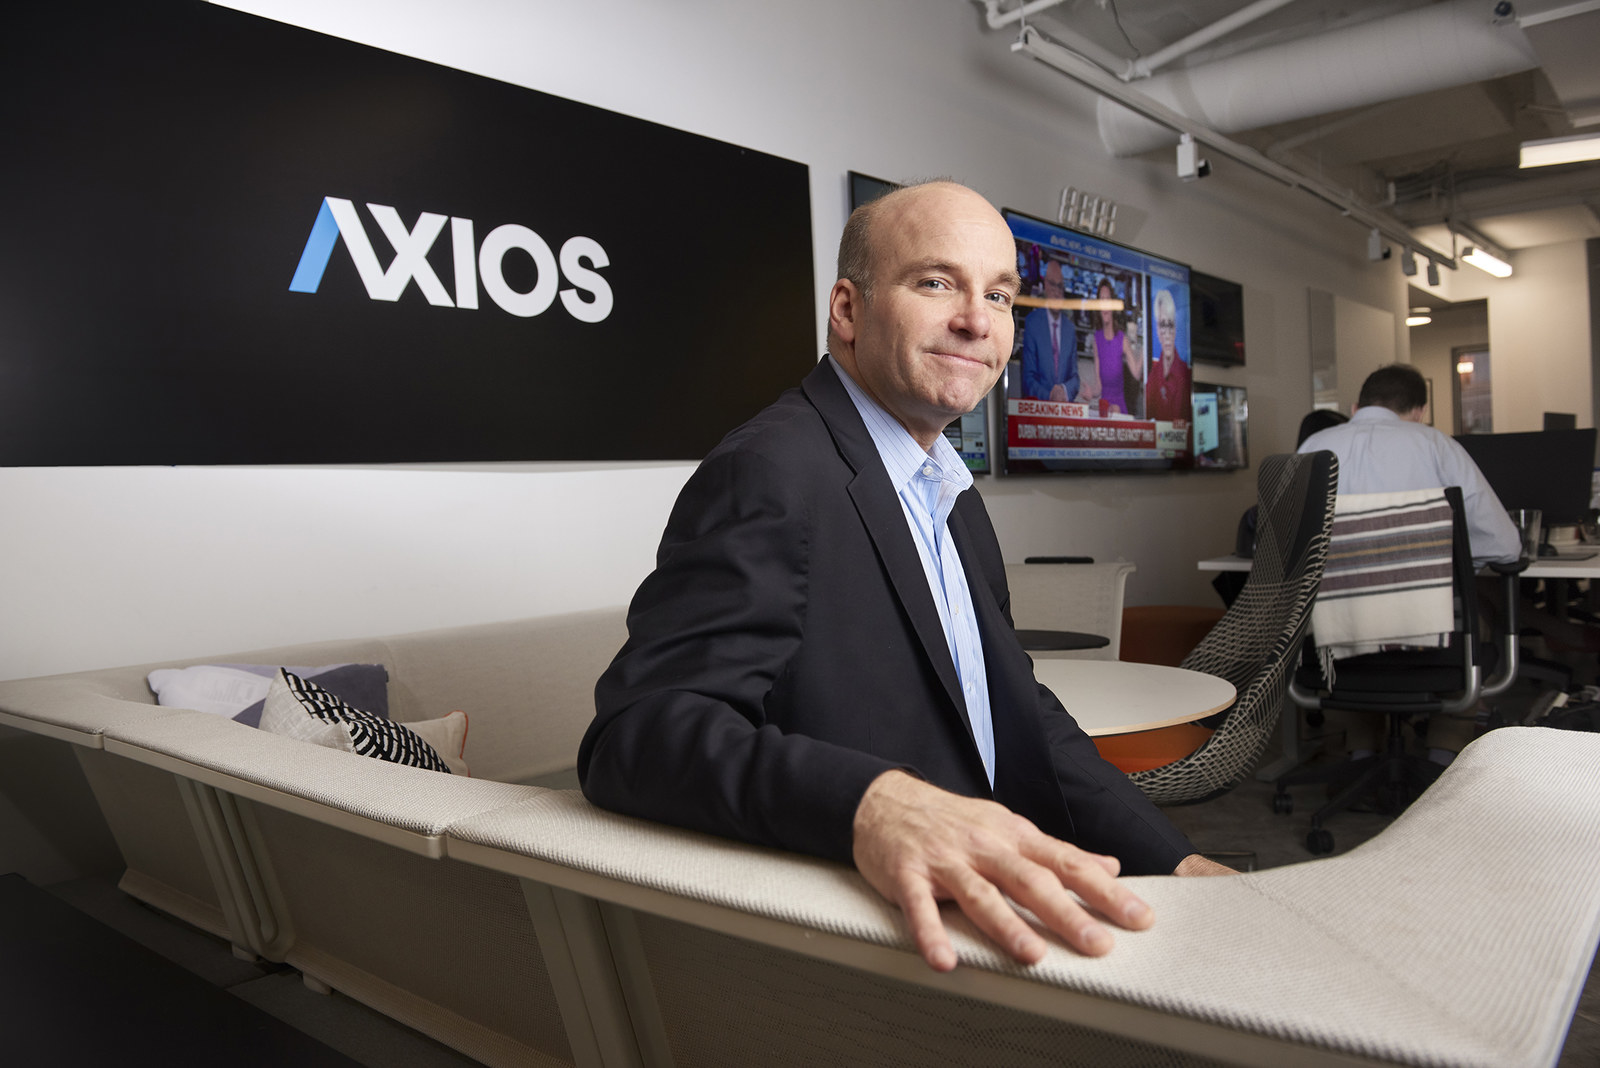 Mike Allen, cofounder of the media company Axios.